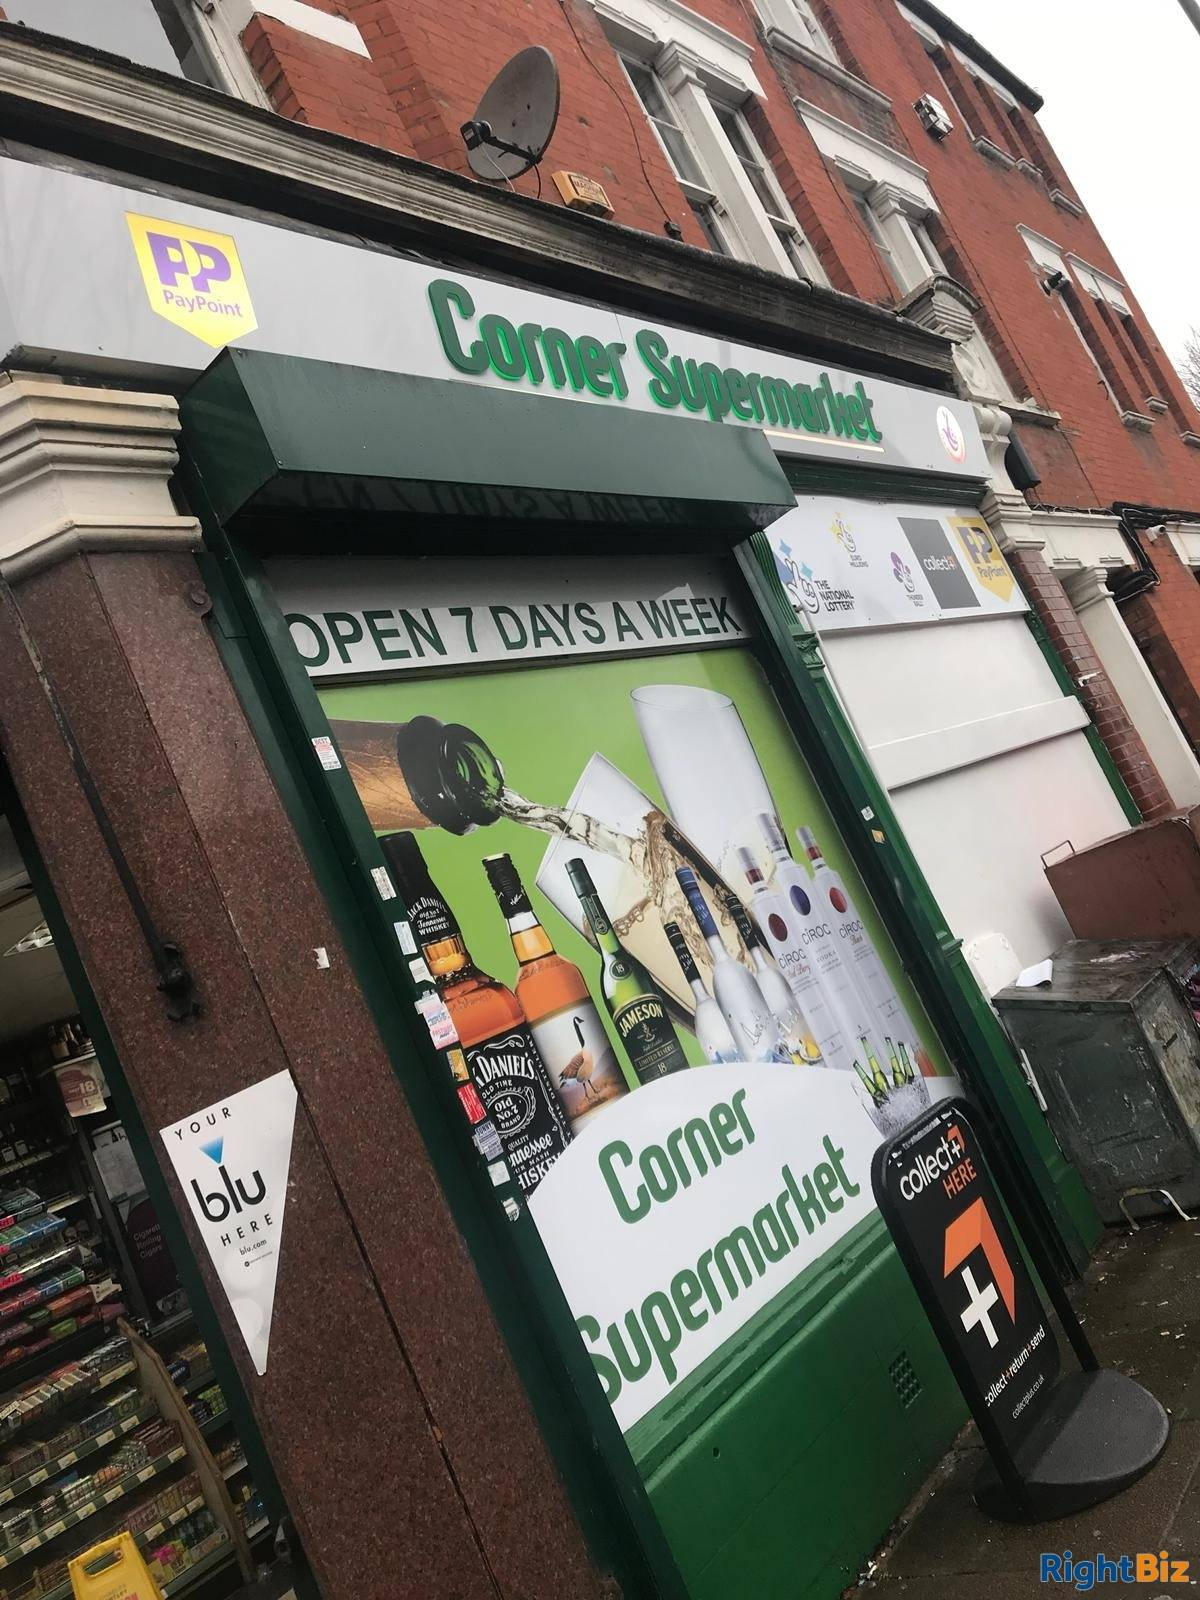 Convenient Store For sale in London Leasehold  - Image 5